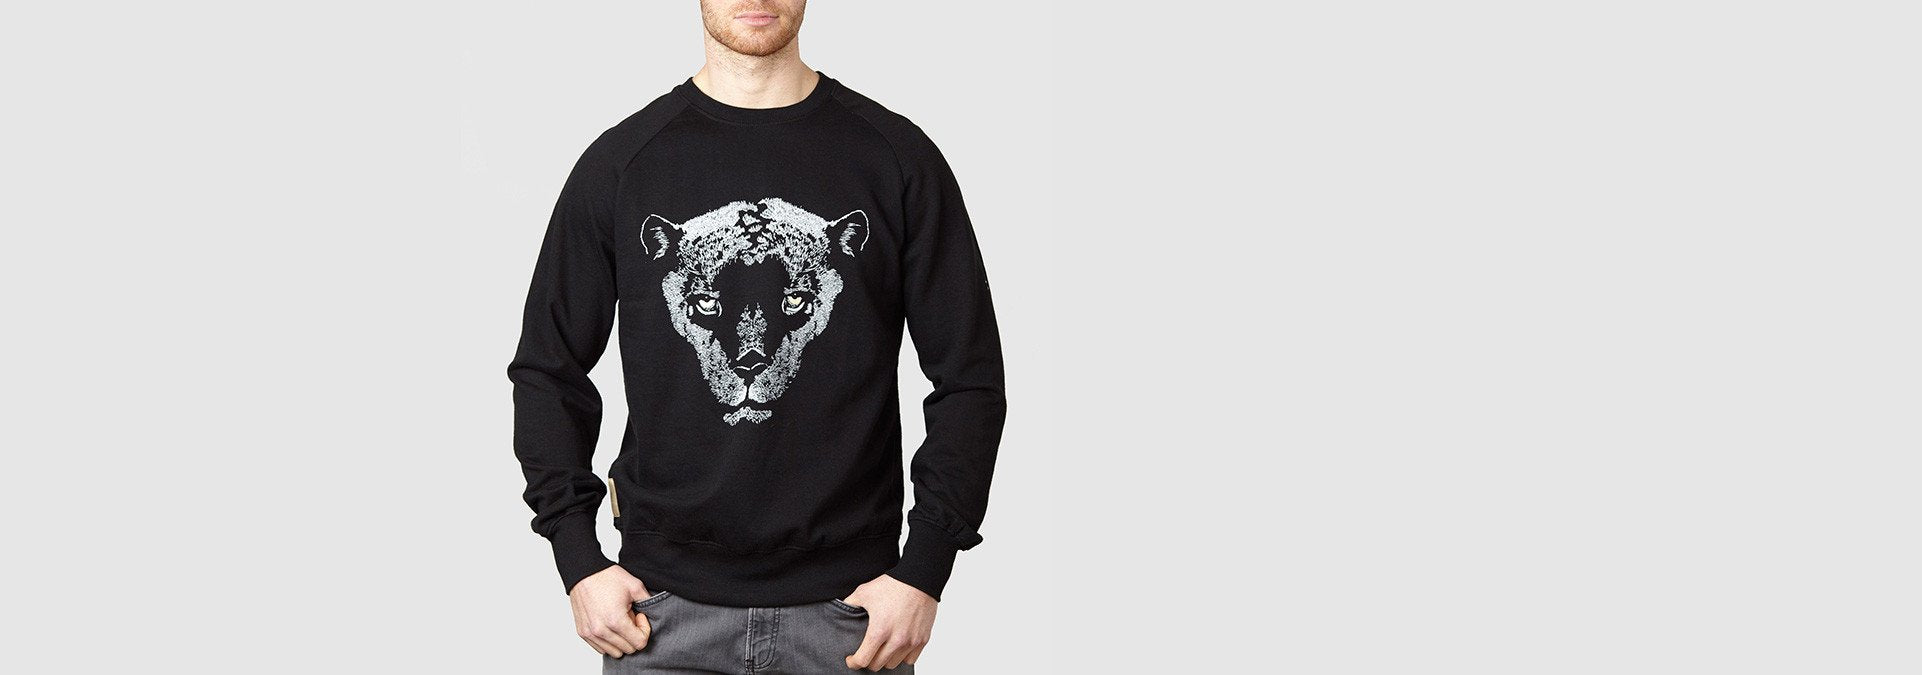 Leopardo Sweatshirt Black